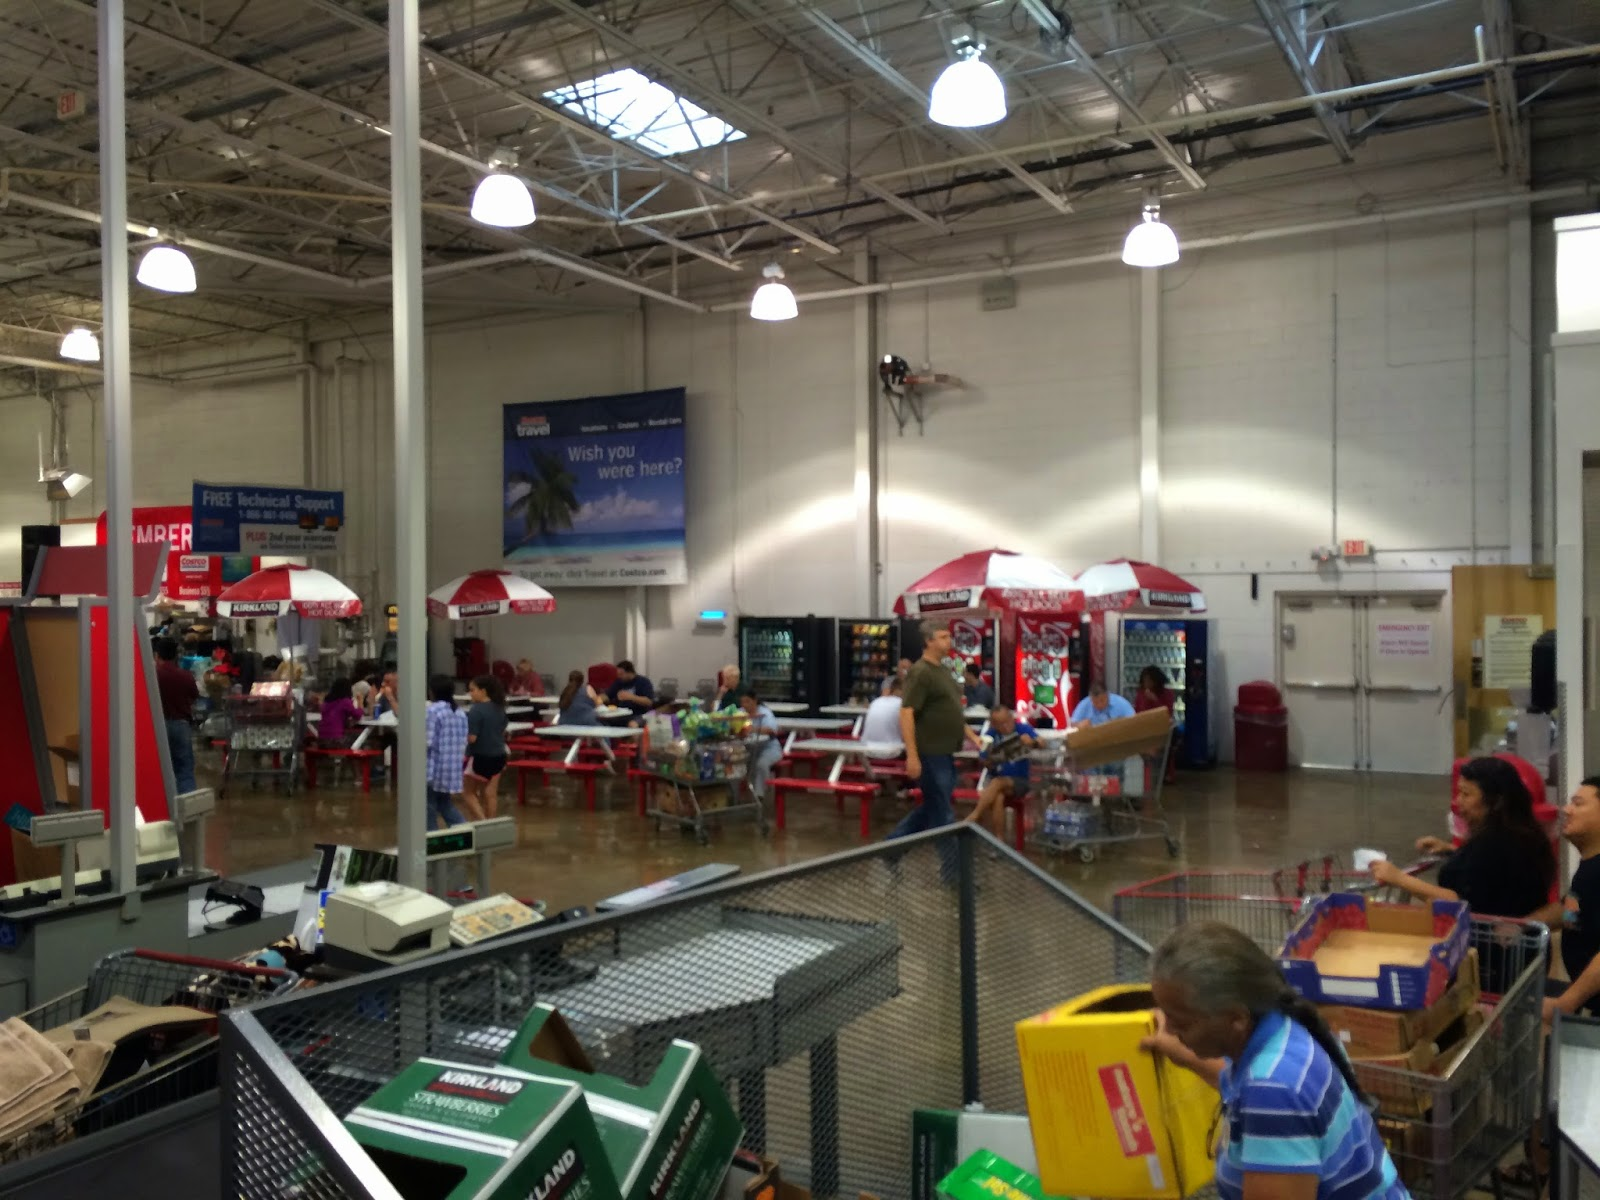 springfield things costco above the costco eatery it certainly isn t the most r tic destination for a meal and i wonder how hygienic those table tops are but as a family we